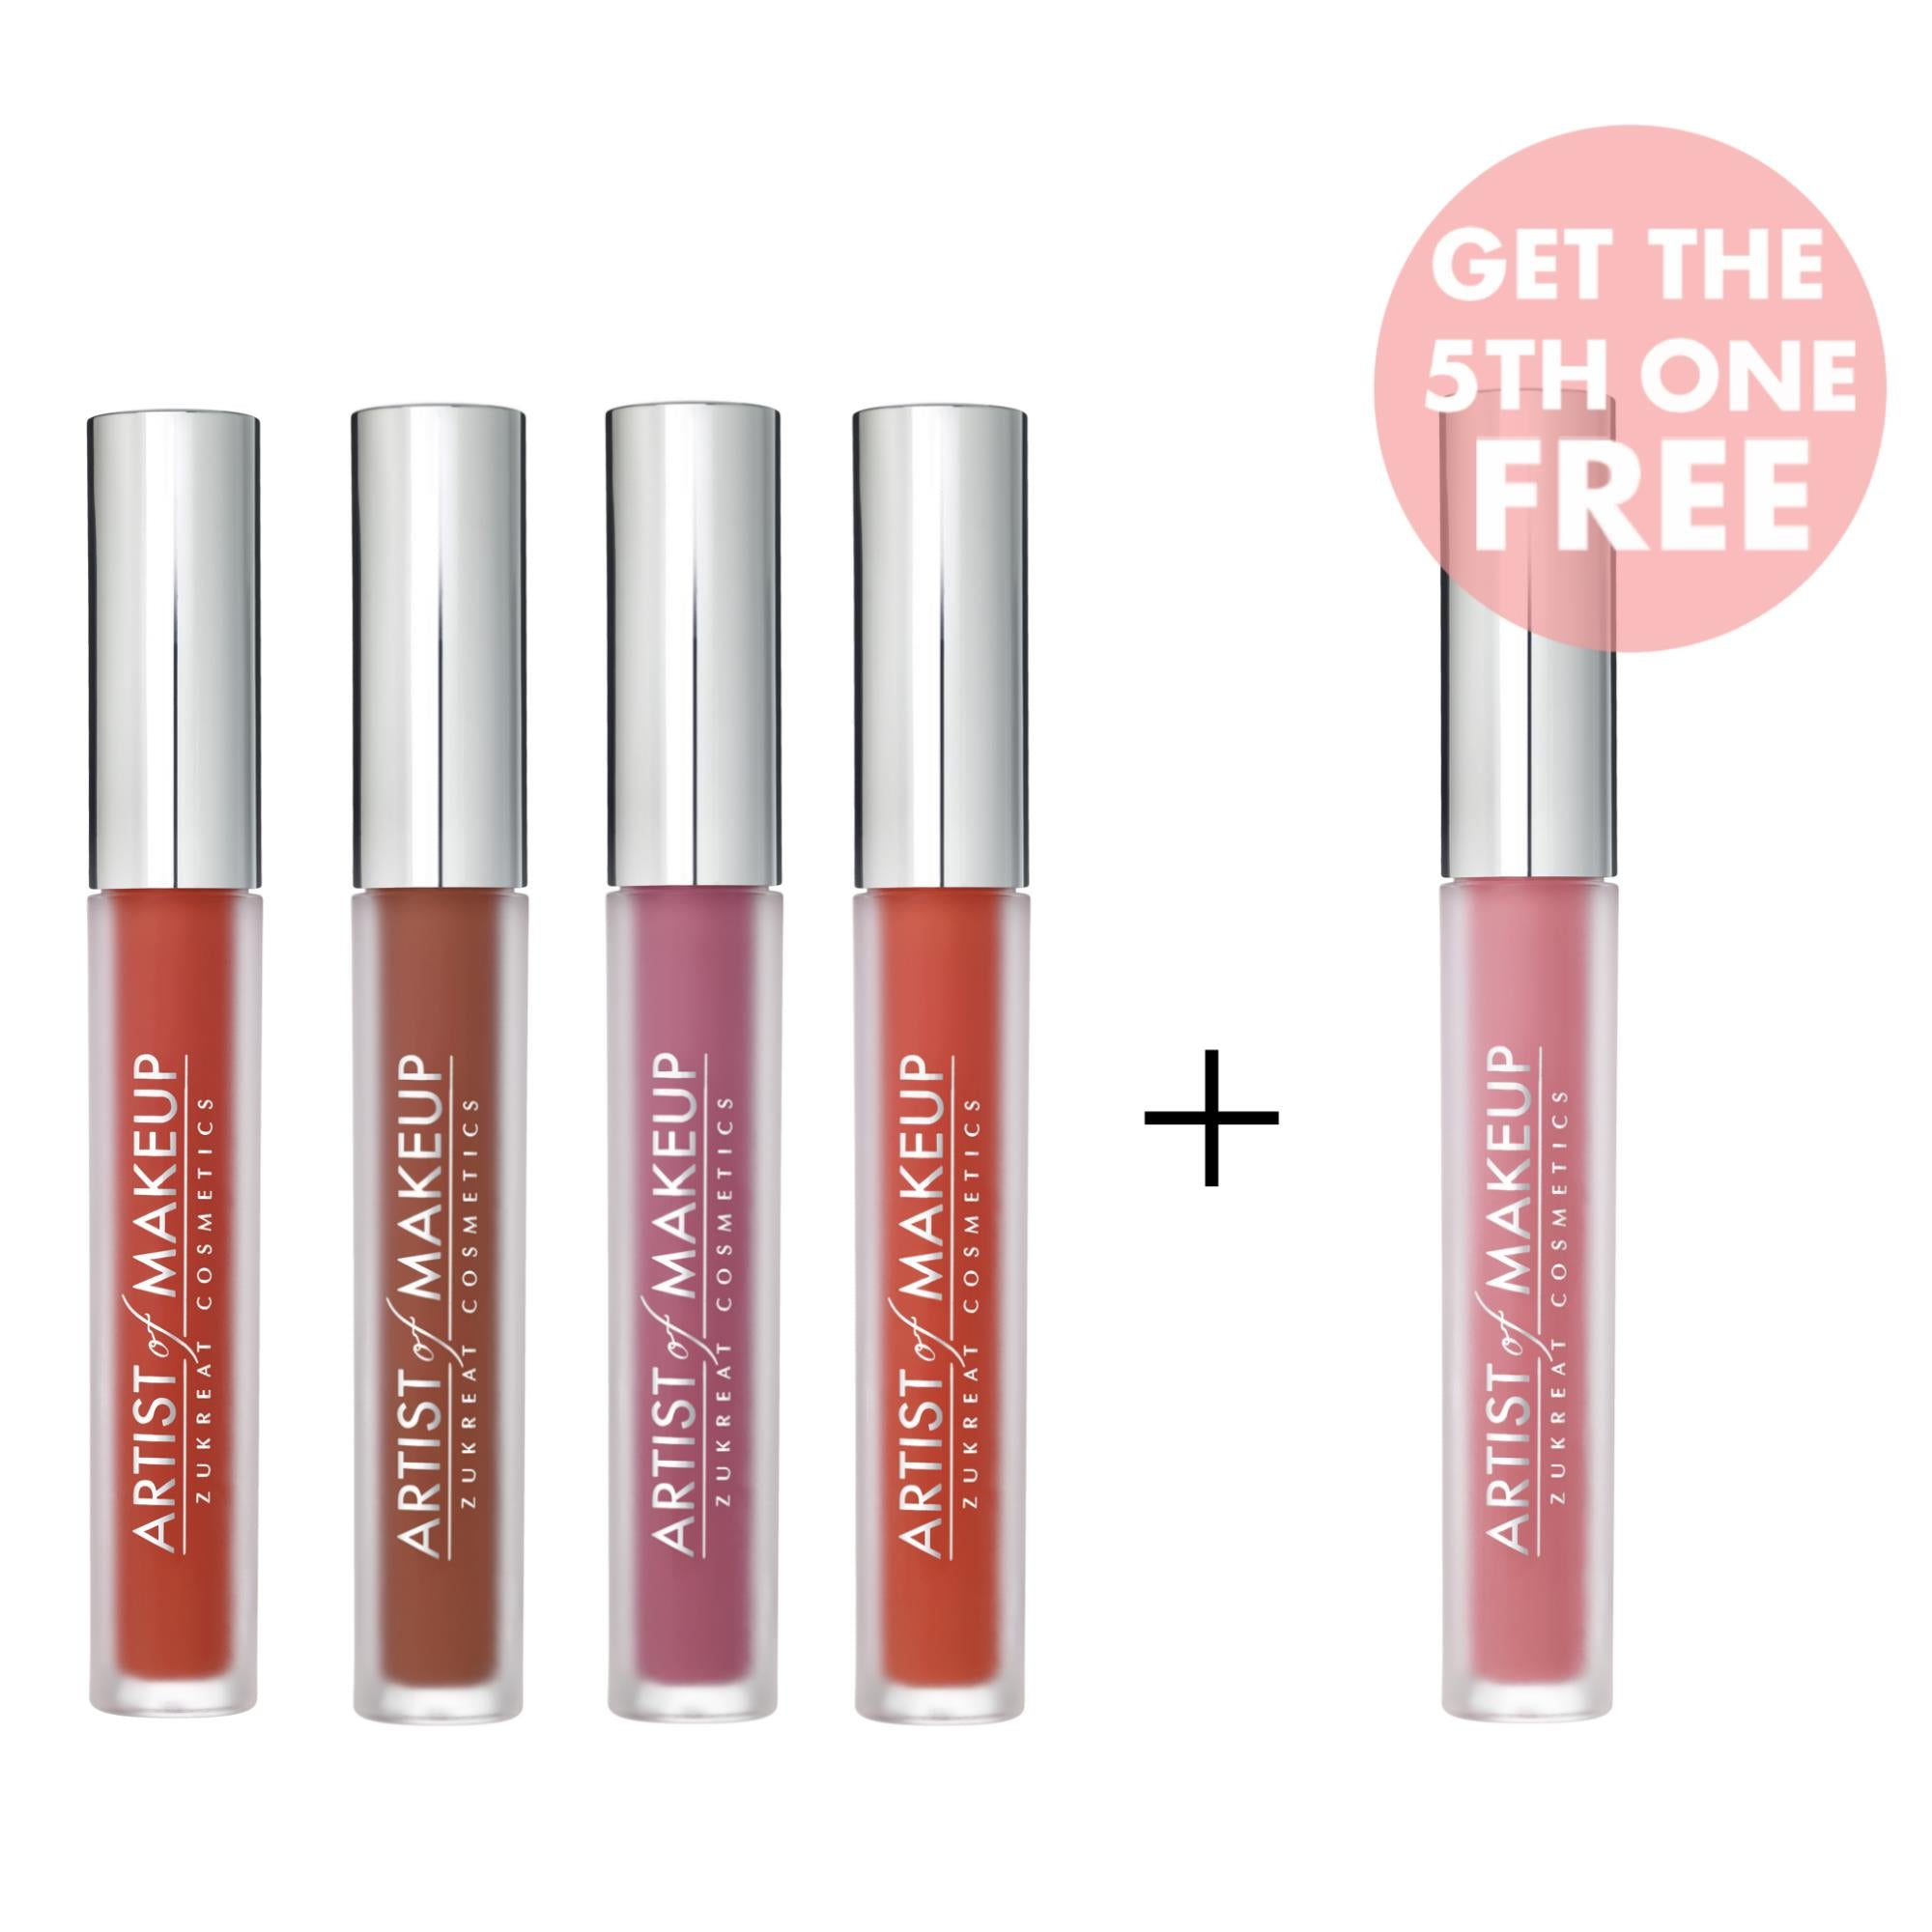 4 Liquid Lipsticks + 1 FREE